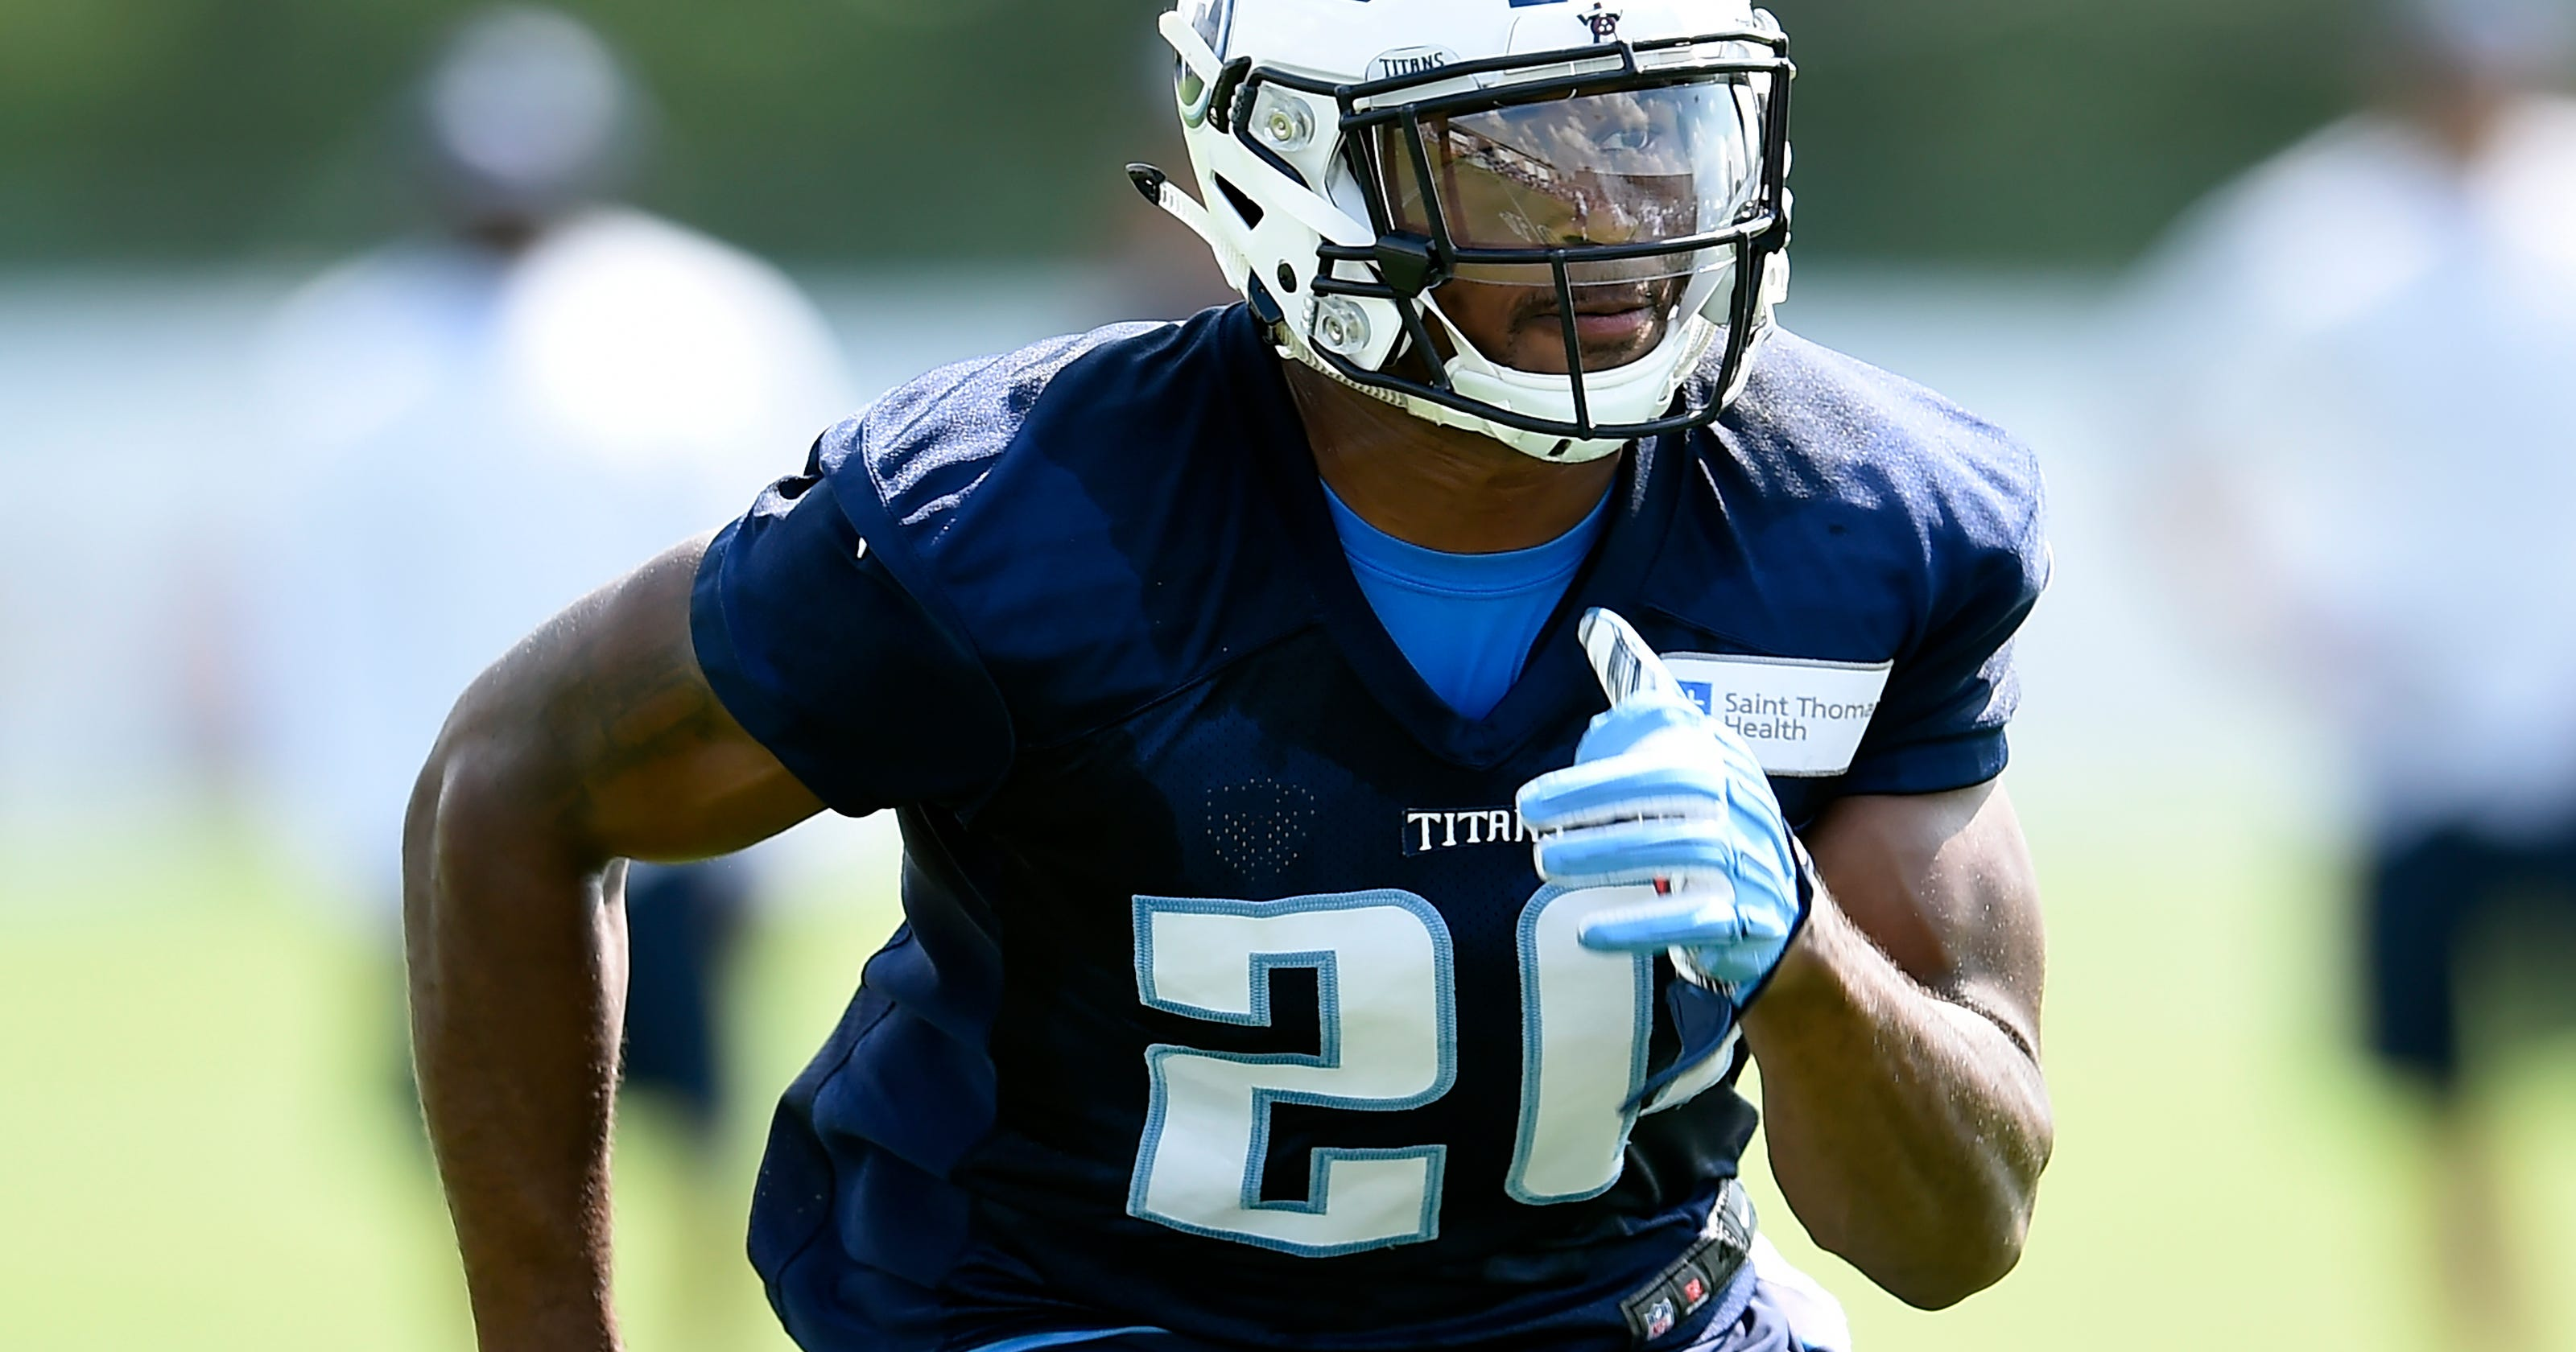 010304431 Titans rookie Kevin Byard moves up depth chart